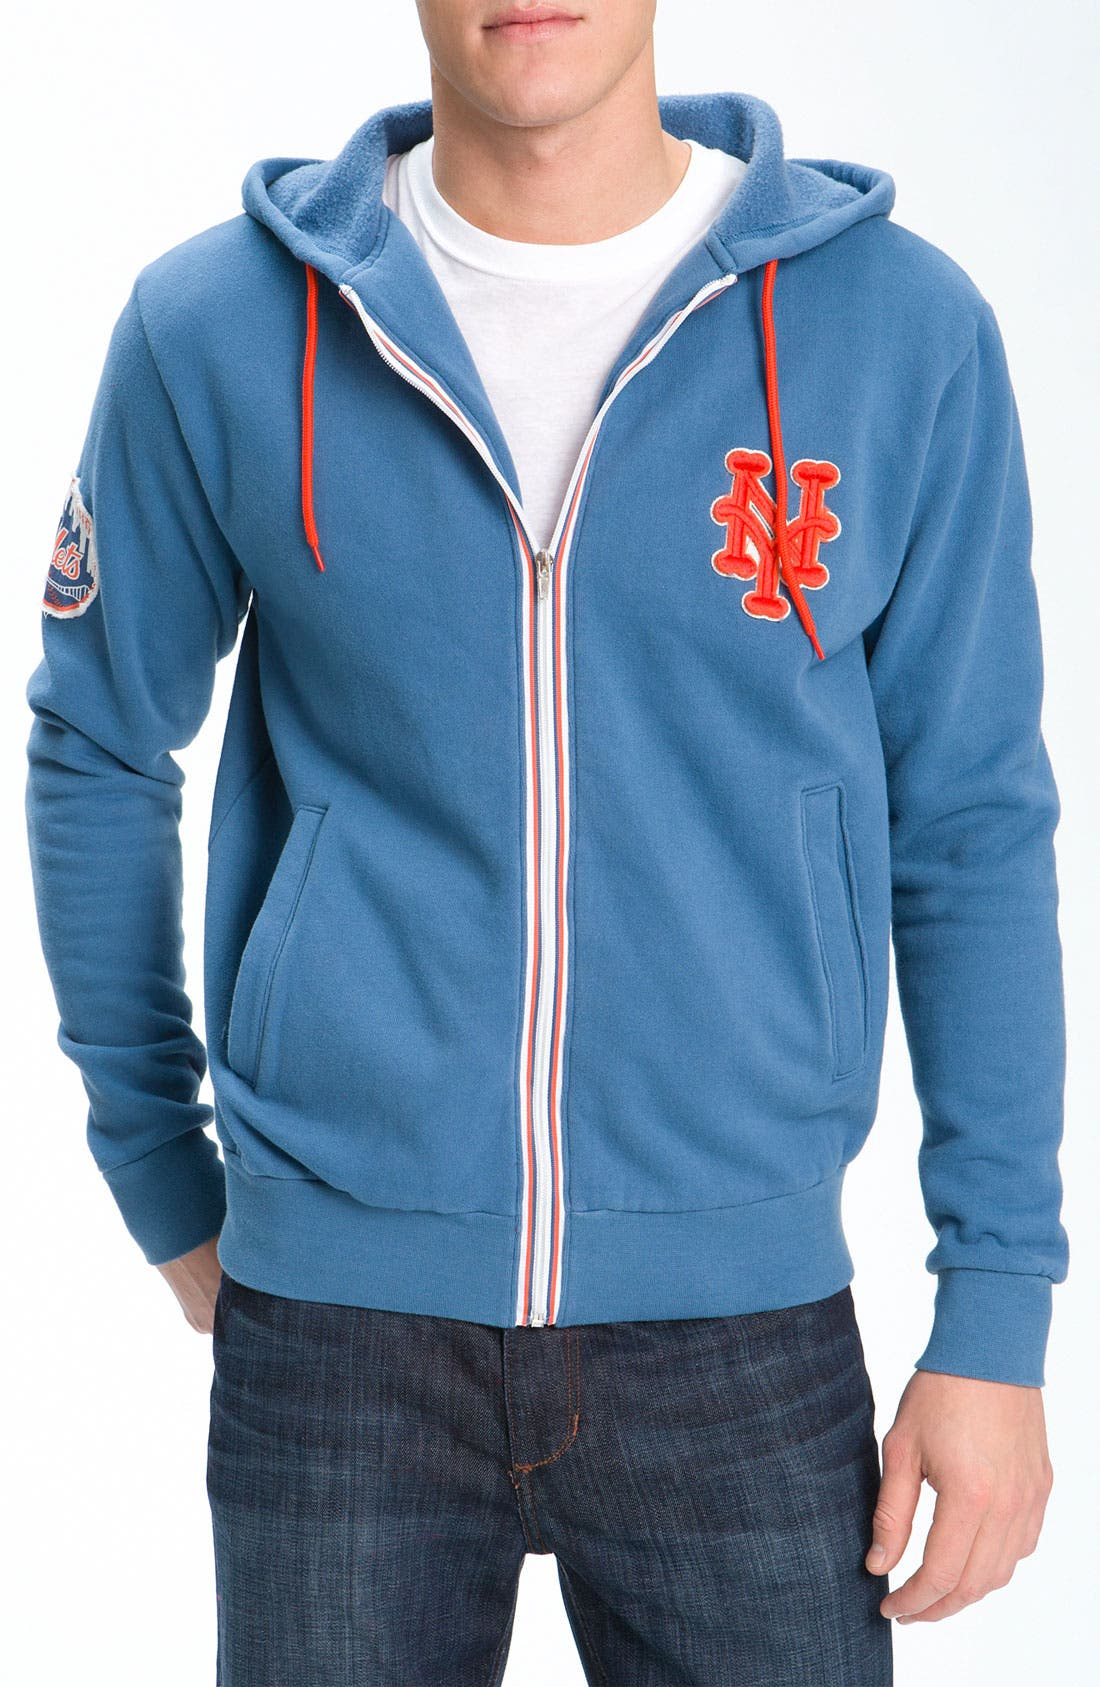 Main Image - Wright & Ditson 'New York Mets' Hoodie